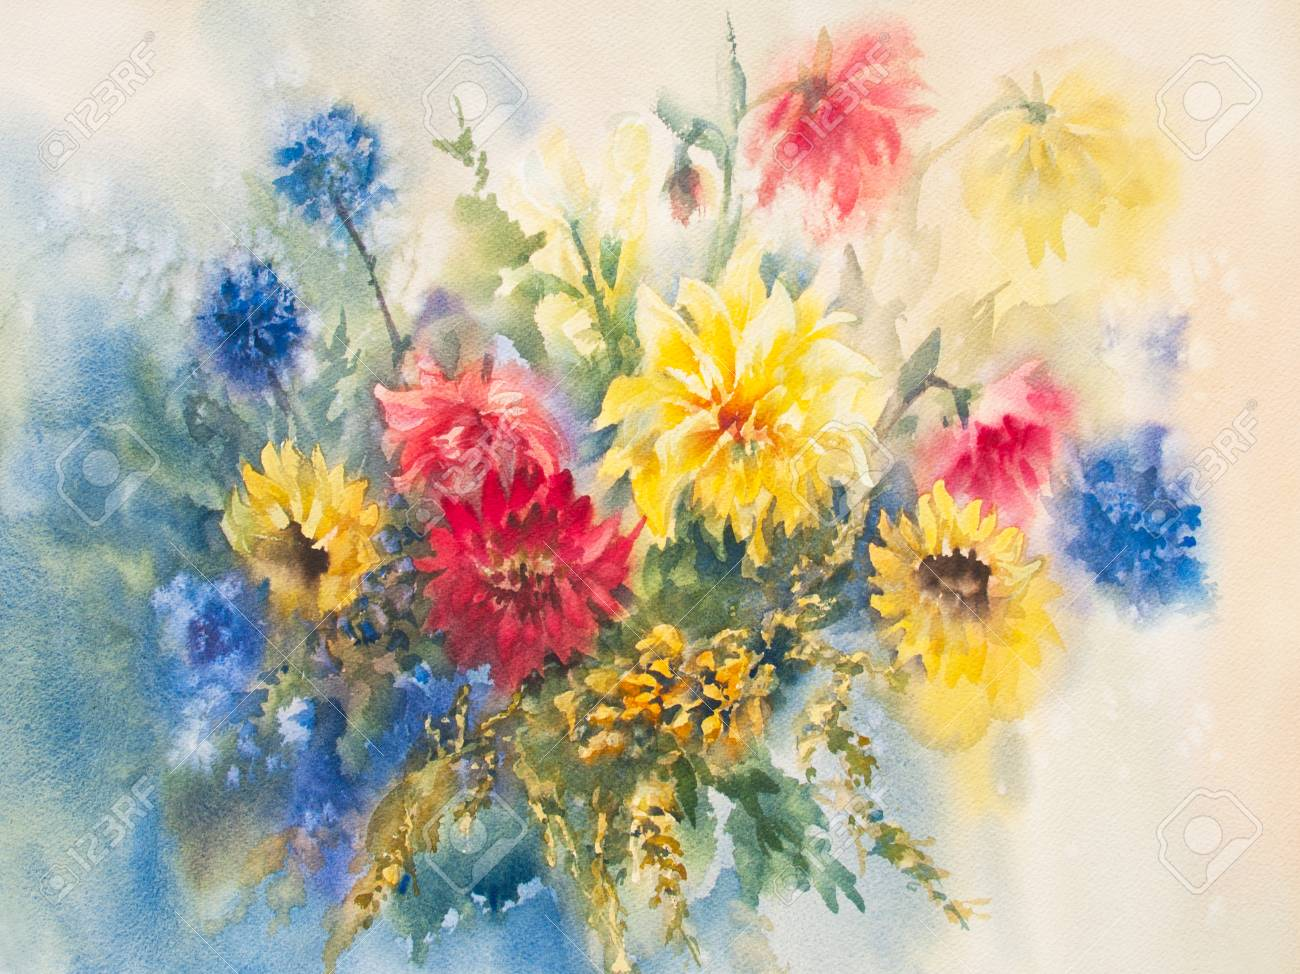 Yellow and red dahlias with blue flowers bouquet watercolor stock yellow and red dahlias with blue flowers bouquet watercolor painting illustration hand painted izmirmasajfo